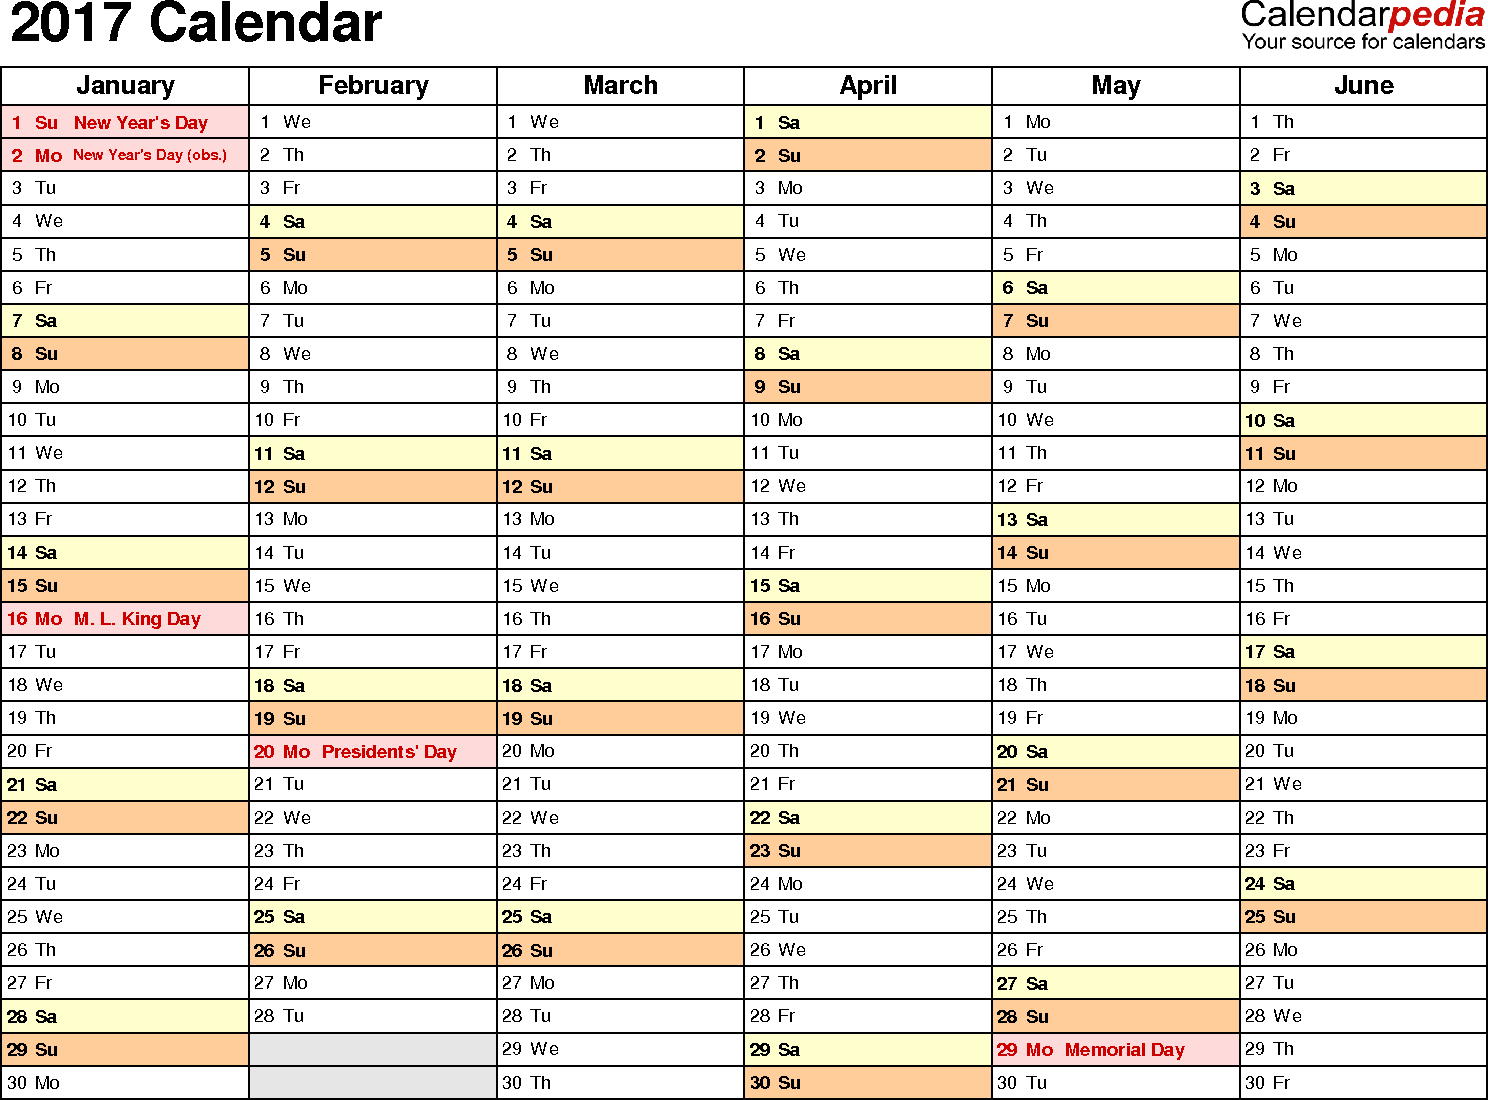 Ediblewildsus  Surprising  Calendar  Download  Free Printable Excel Templates Xls With Hot Template   Calendar For Excel Months Horizontally  Pages Landscape Orientation With Alluring Excel Outlier Also Excel Control Chart Template In Addition Equal Function In Excel And Text Filter Excel As Well As Parking At Excel Center Additionally Excel Timer Vba From Calendarpediacom With Ediblewildsus  Hot  Calendar  Download  Free Printable Excel Templates Xls With Alluring Template   Calendar For Excel Months Horizontally  Pages Landscape Orientation And Surprising Excel Outlier Also Excel Control Chart Template In Addition Equal Function In Excel From Calendarpediacom